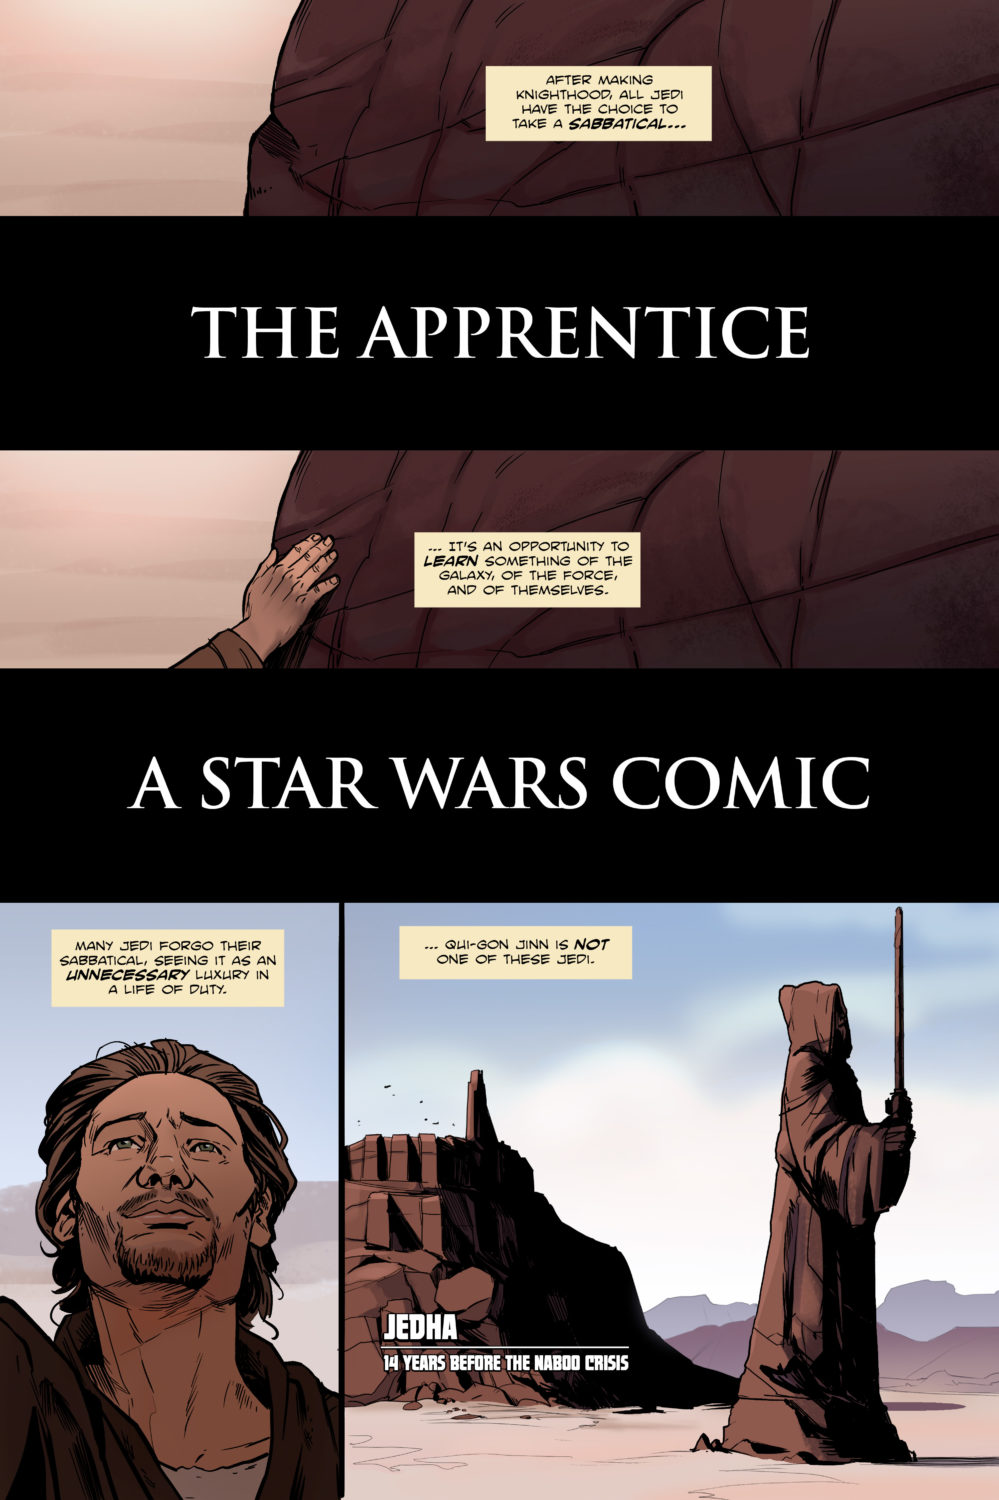 A Star Wars Comic